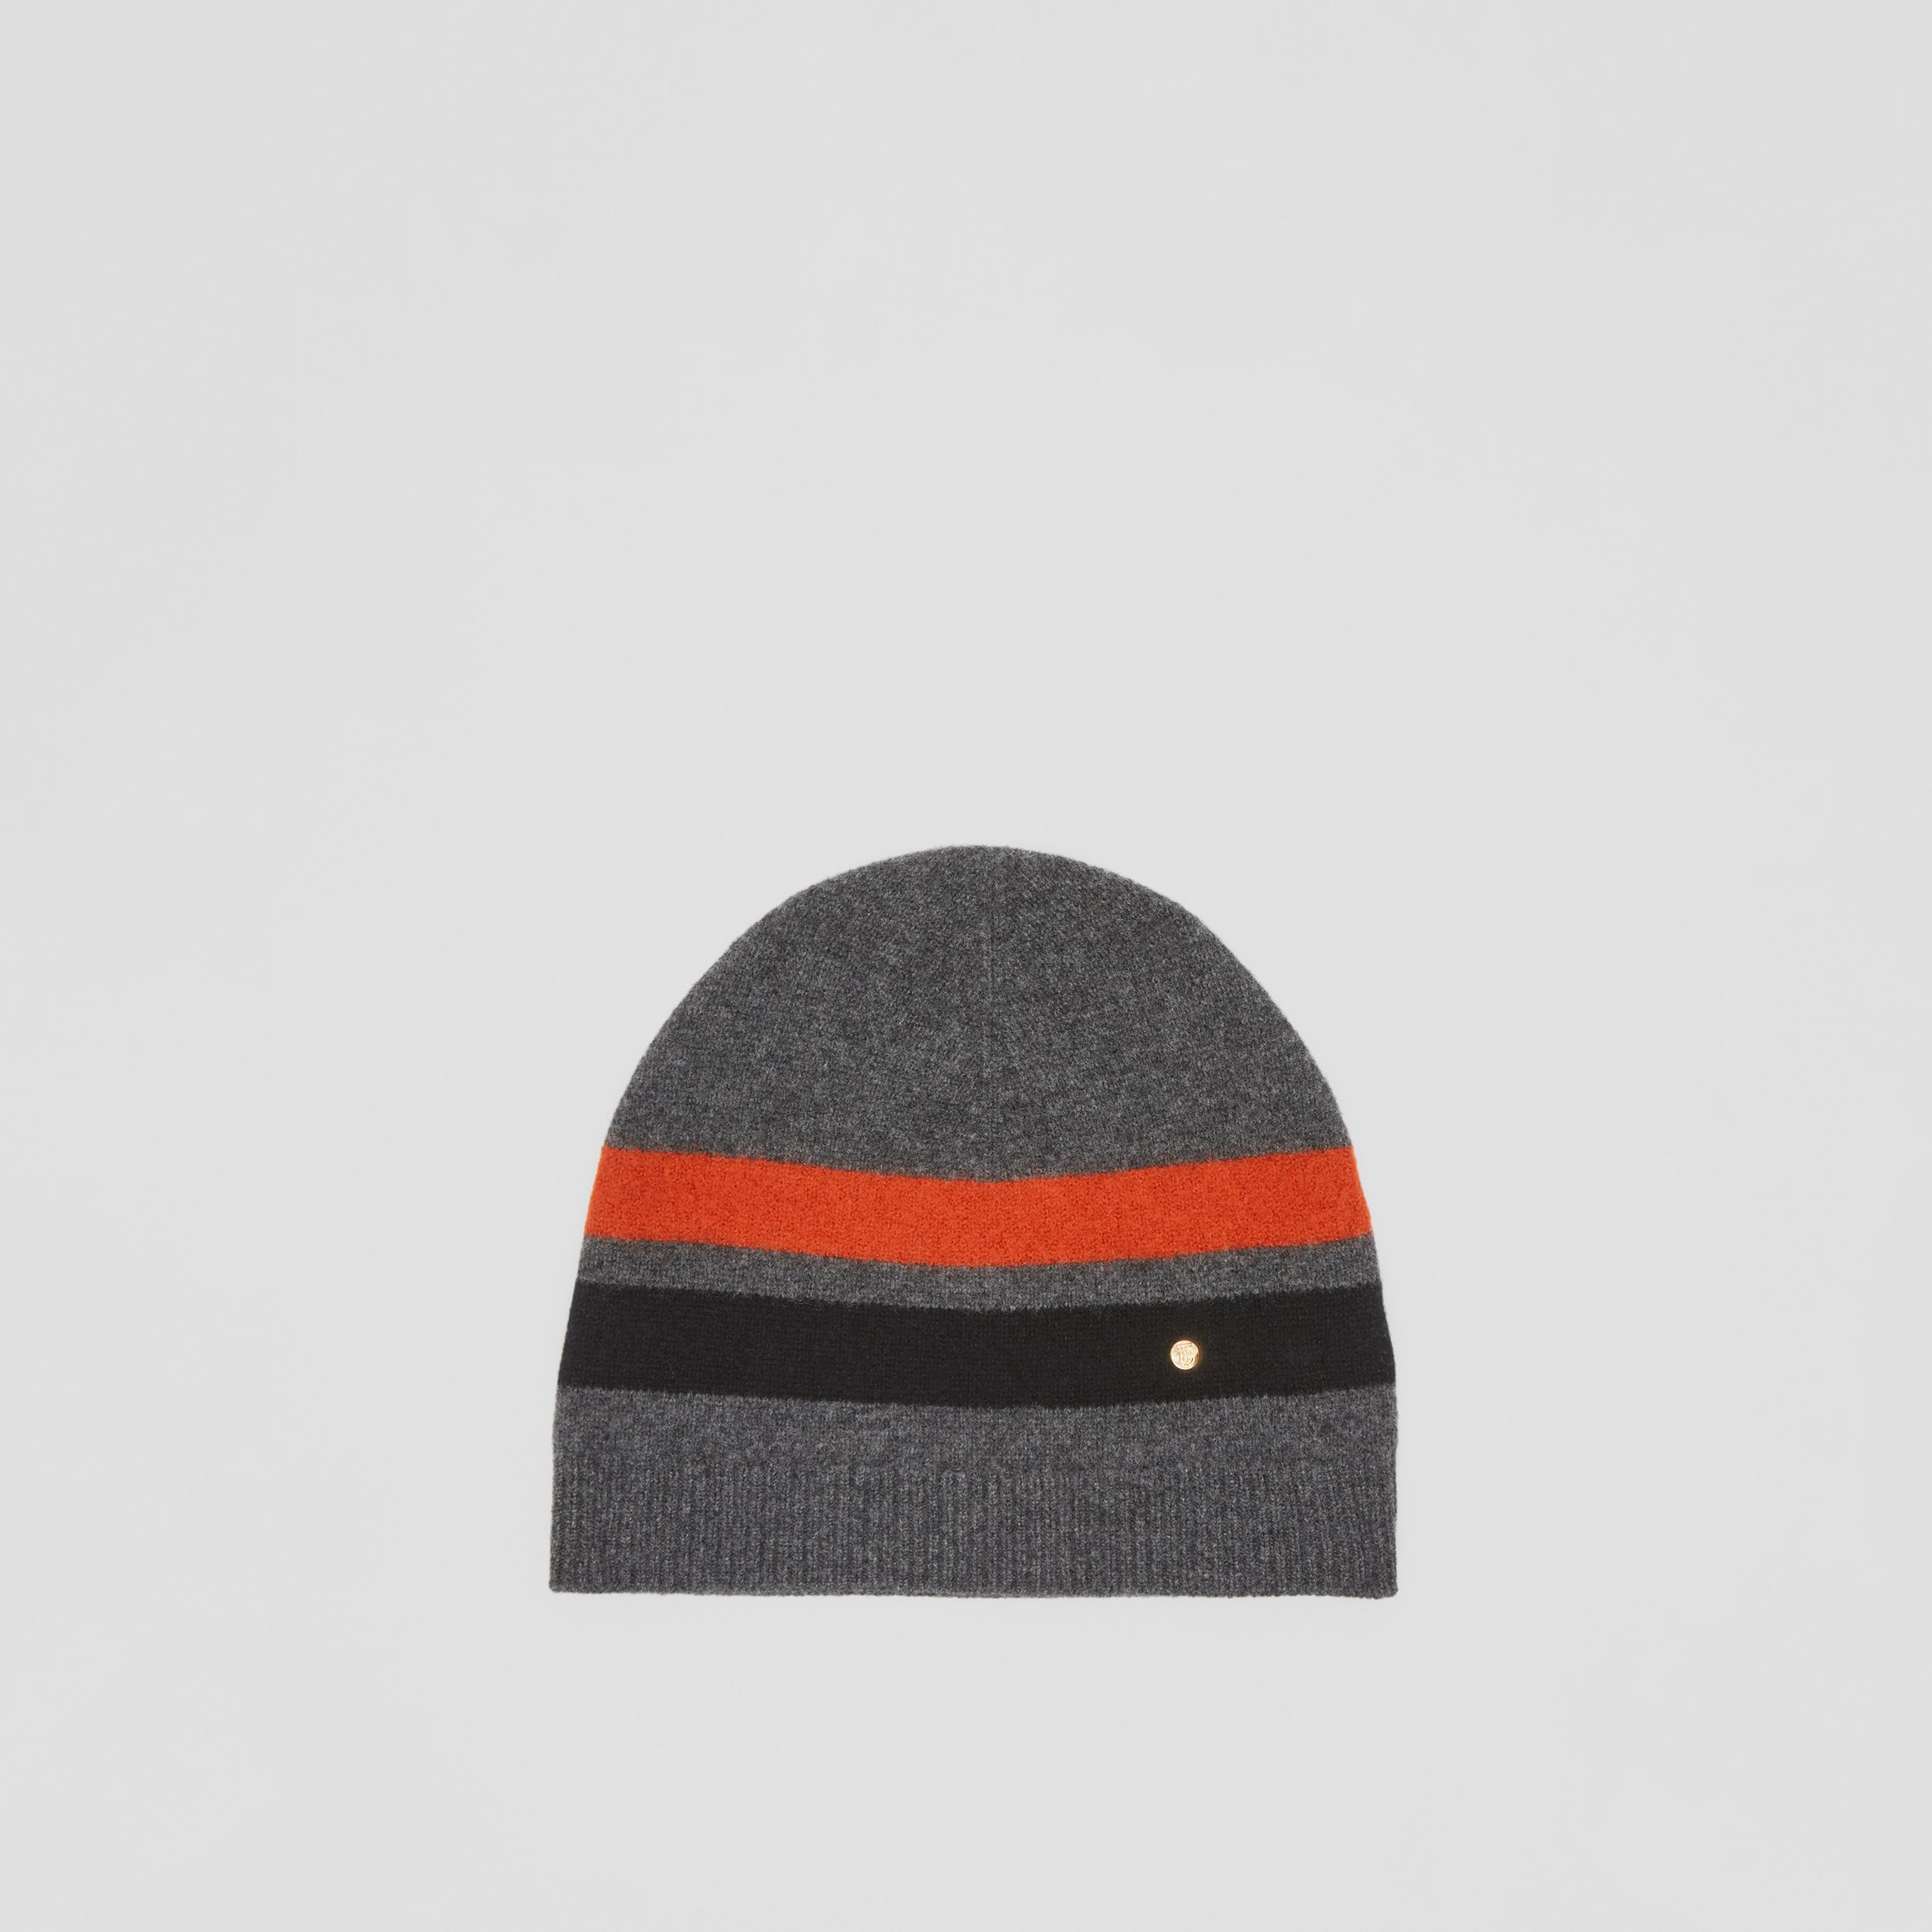 Monogram Motif Merino Wool Cashmere Beanie in Dark Grey | Burberry - 1